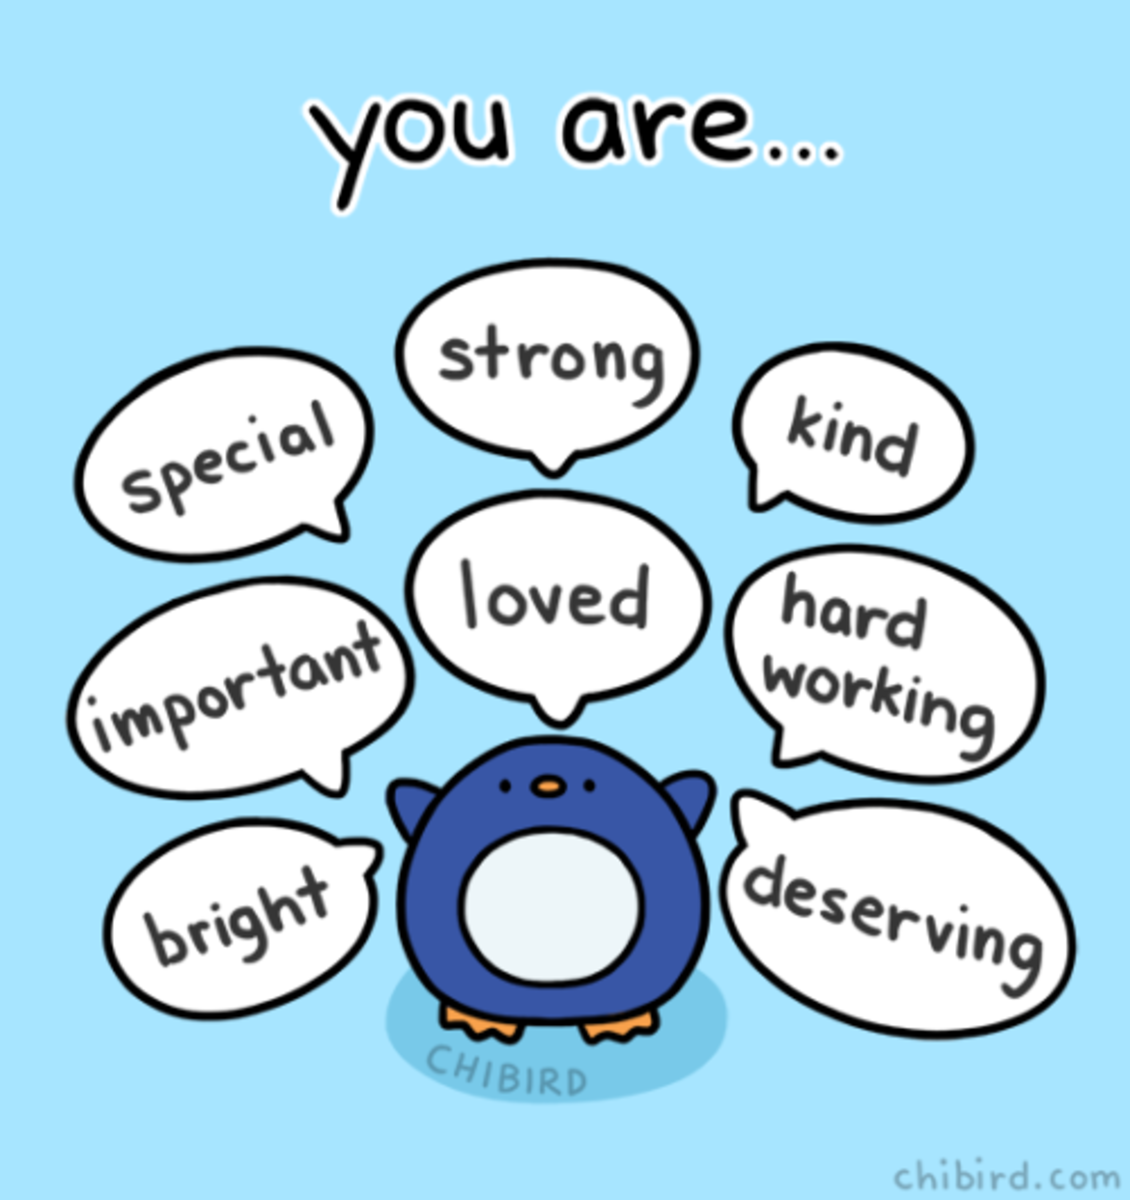 You are lovely and special and we care about you so much.